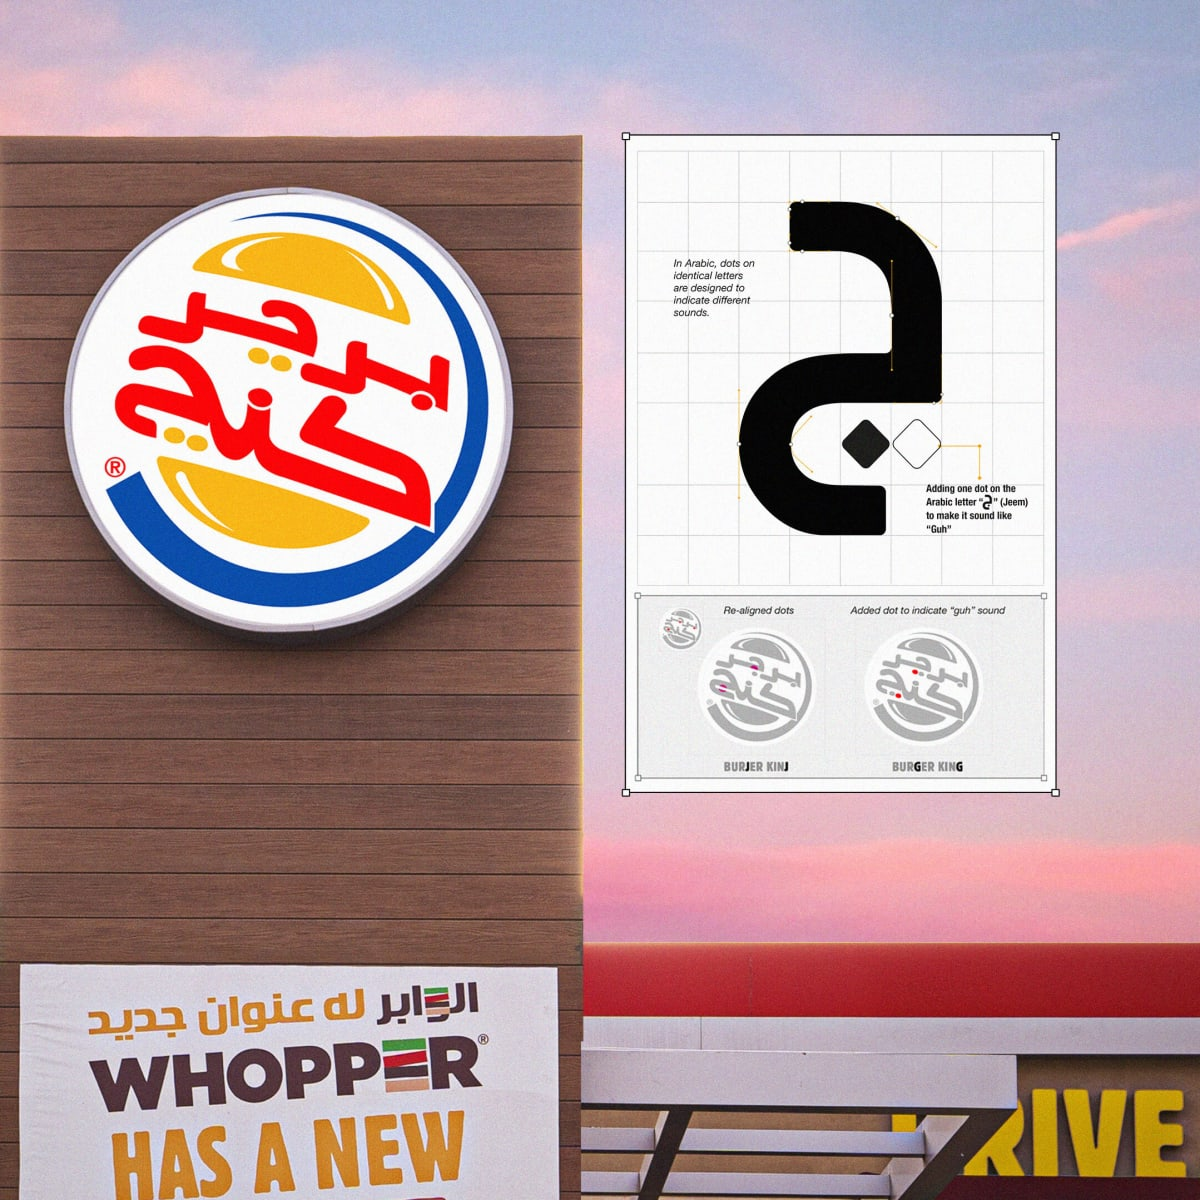 Burger King introduced a new letter to the alphabet and replaced their Arabic logo to solve a major linguistic challenge